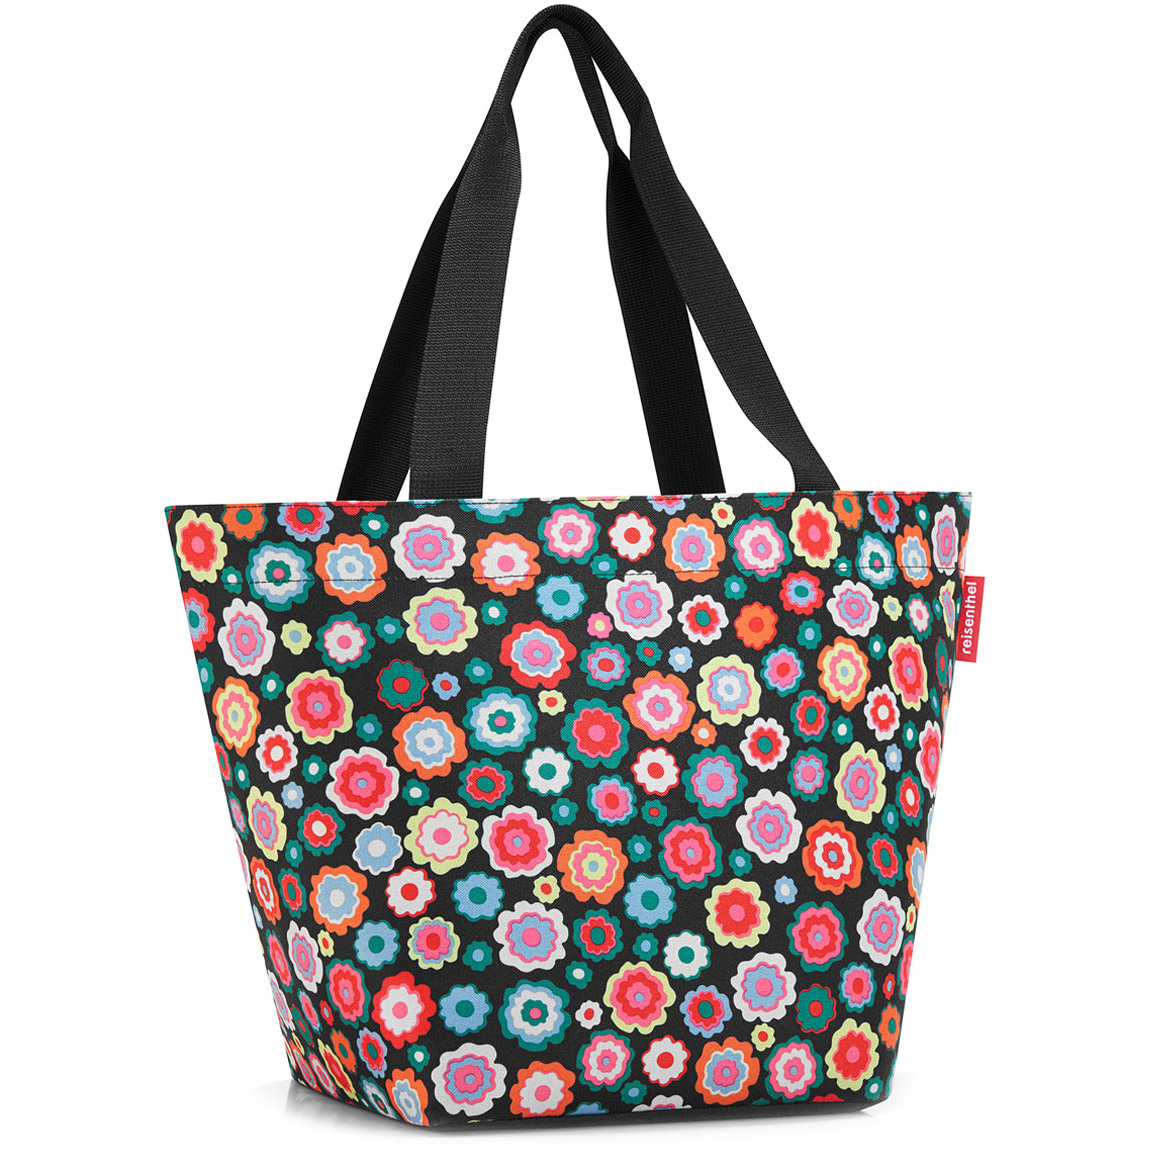 07e83750062c3 Torba na zakupy Reisenthel Shopper M Happy flowers | sklep ...